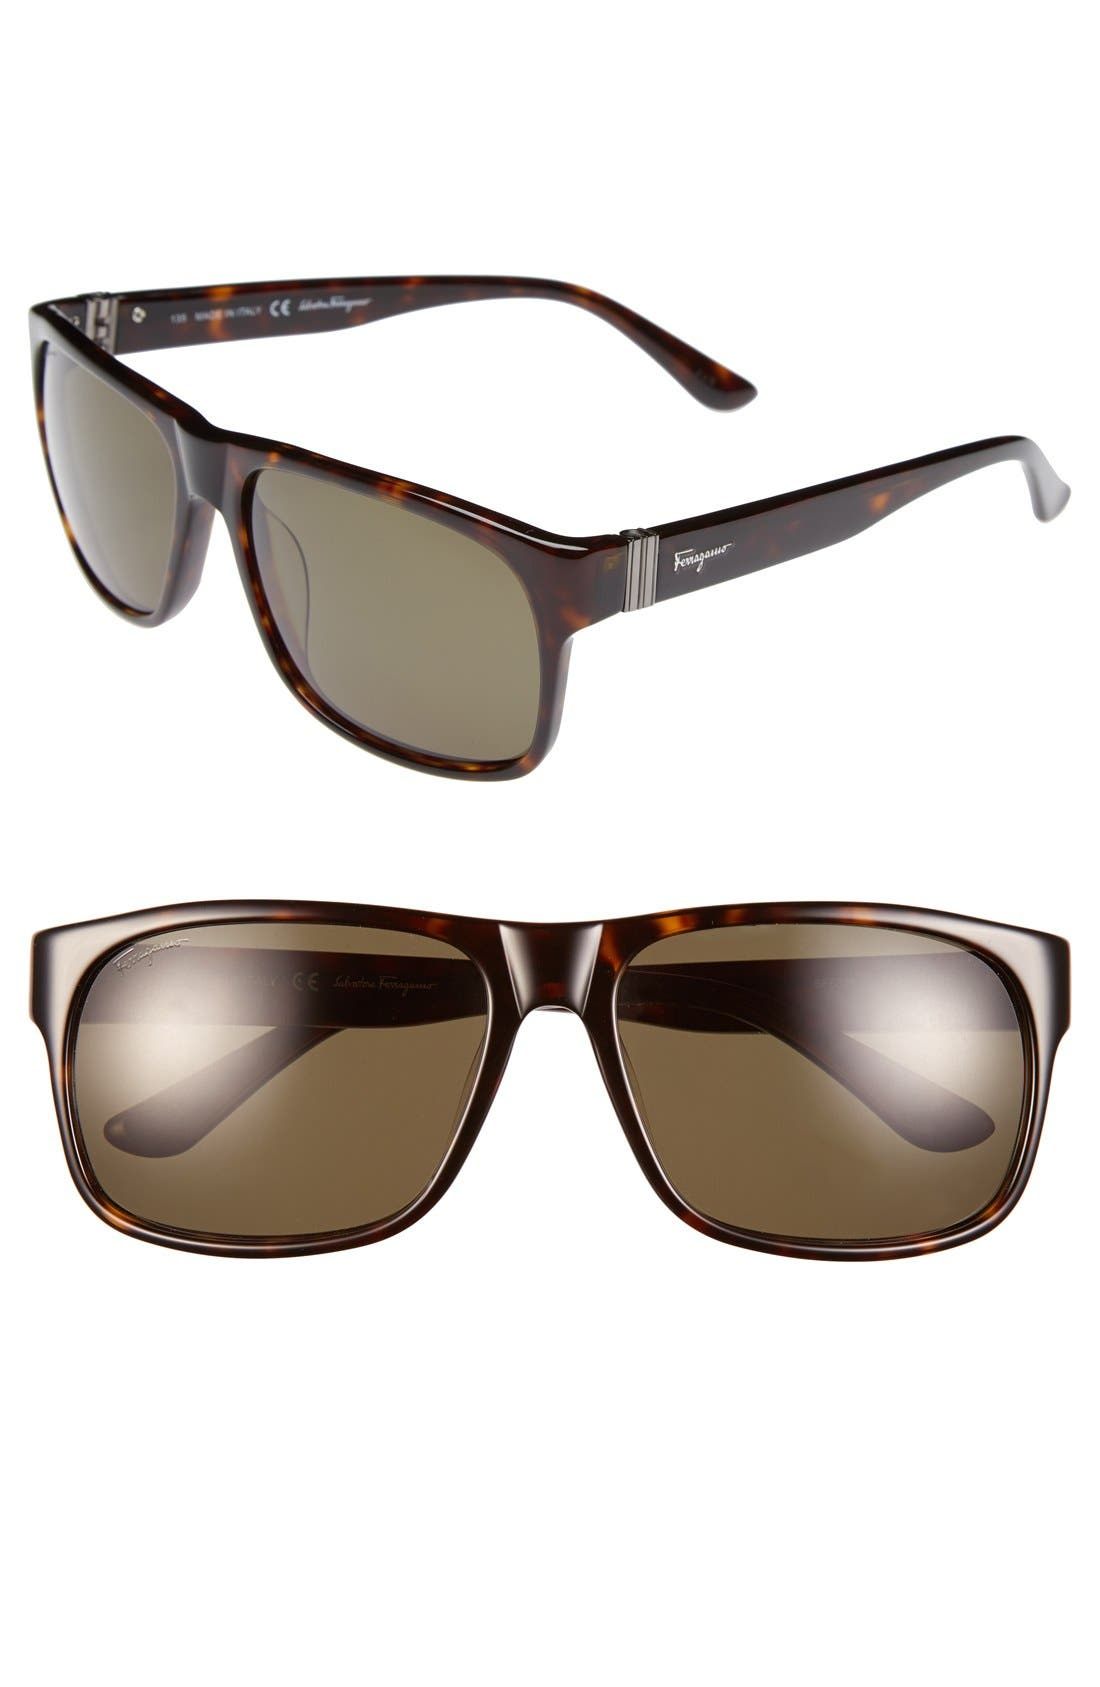 Main Image - Salvatore Ferragamo 57mm Sunglasses